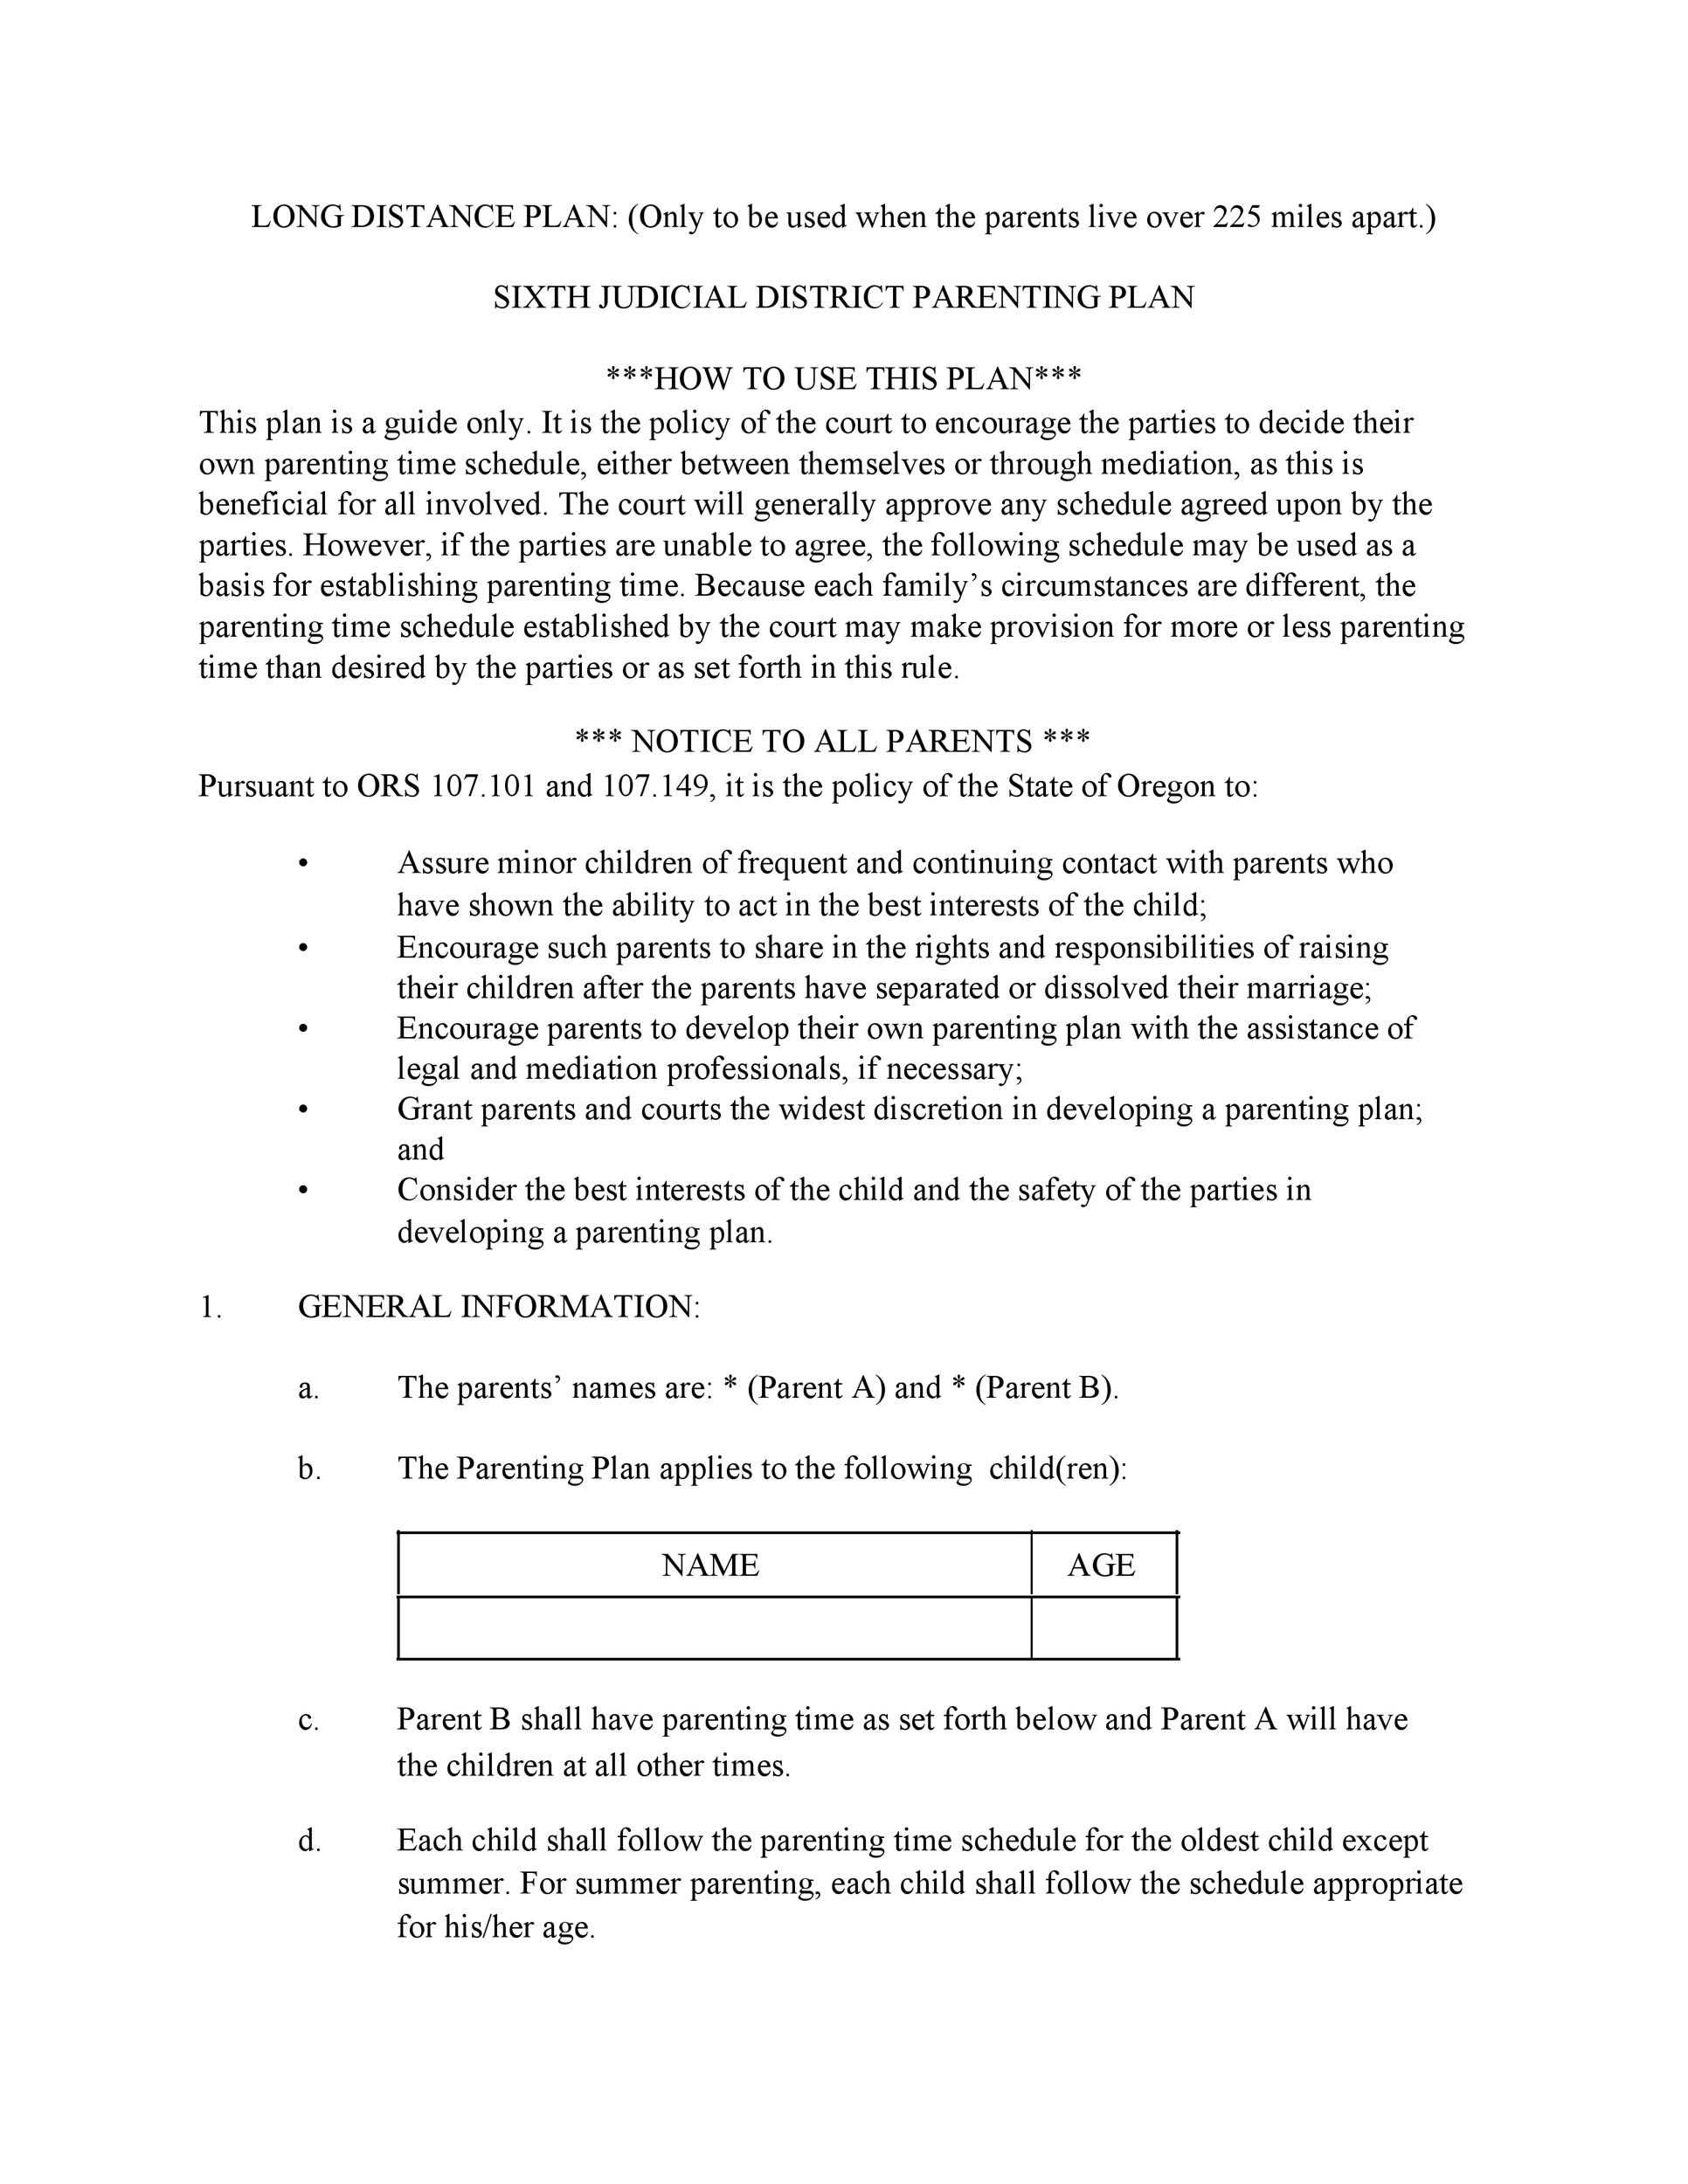 49 FREE Parenting Plan & Custody Agreement Templates ᐅ ...